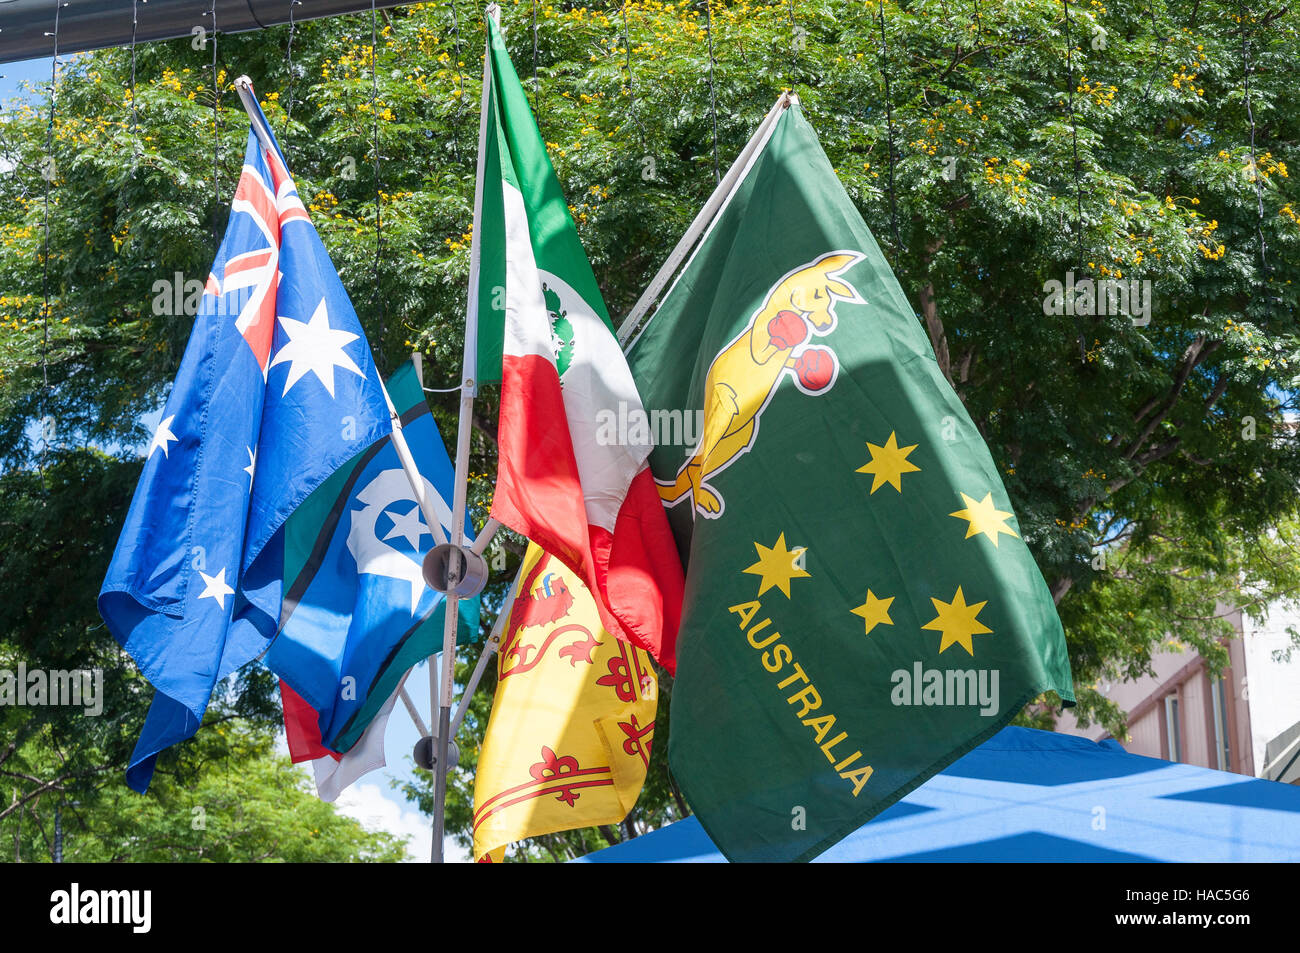 Australian and international flags on stall, Brunswick Street Mall, Fortitude Valley, Brisbane, Queensland, Australia - Stock Image